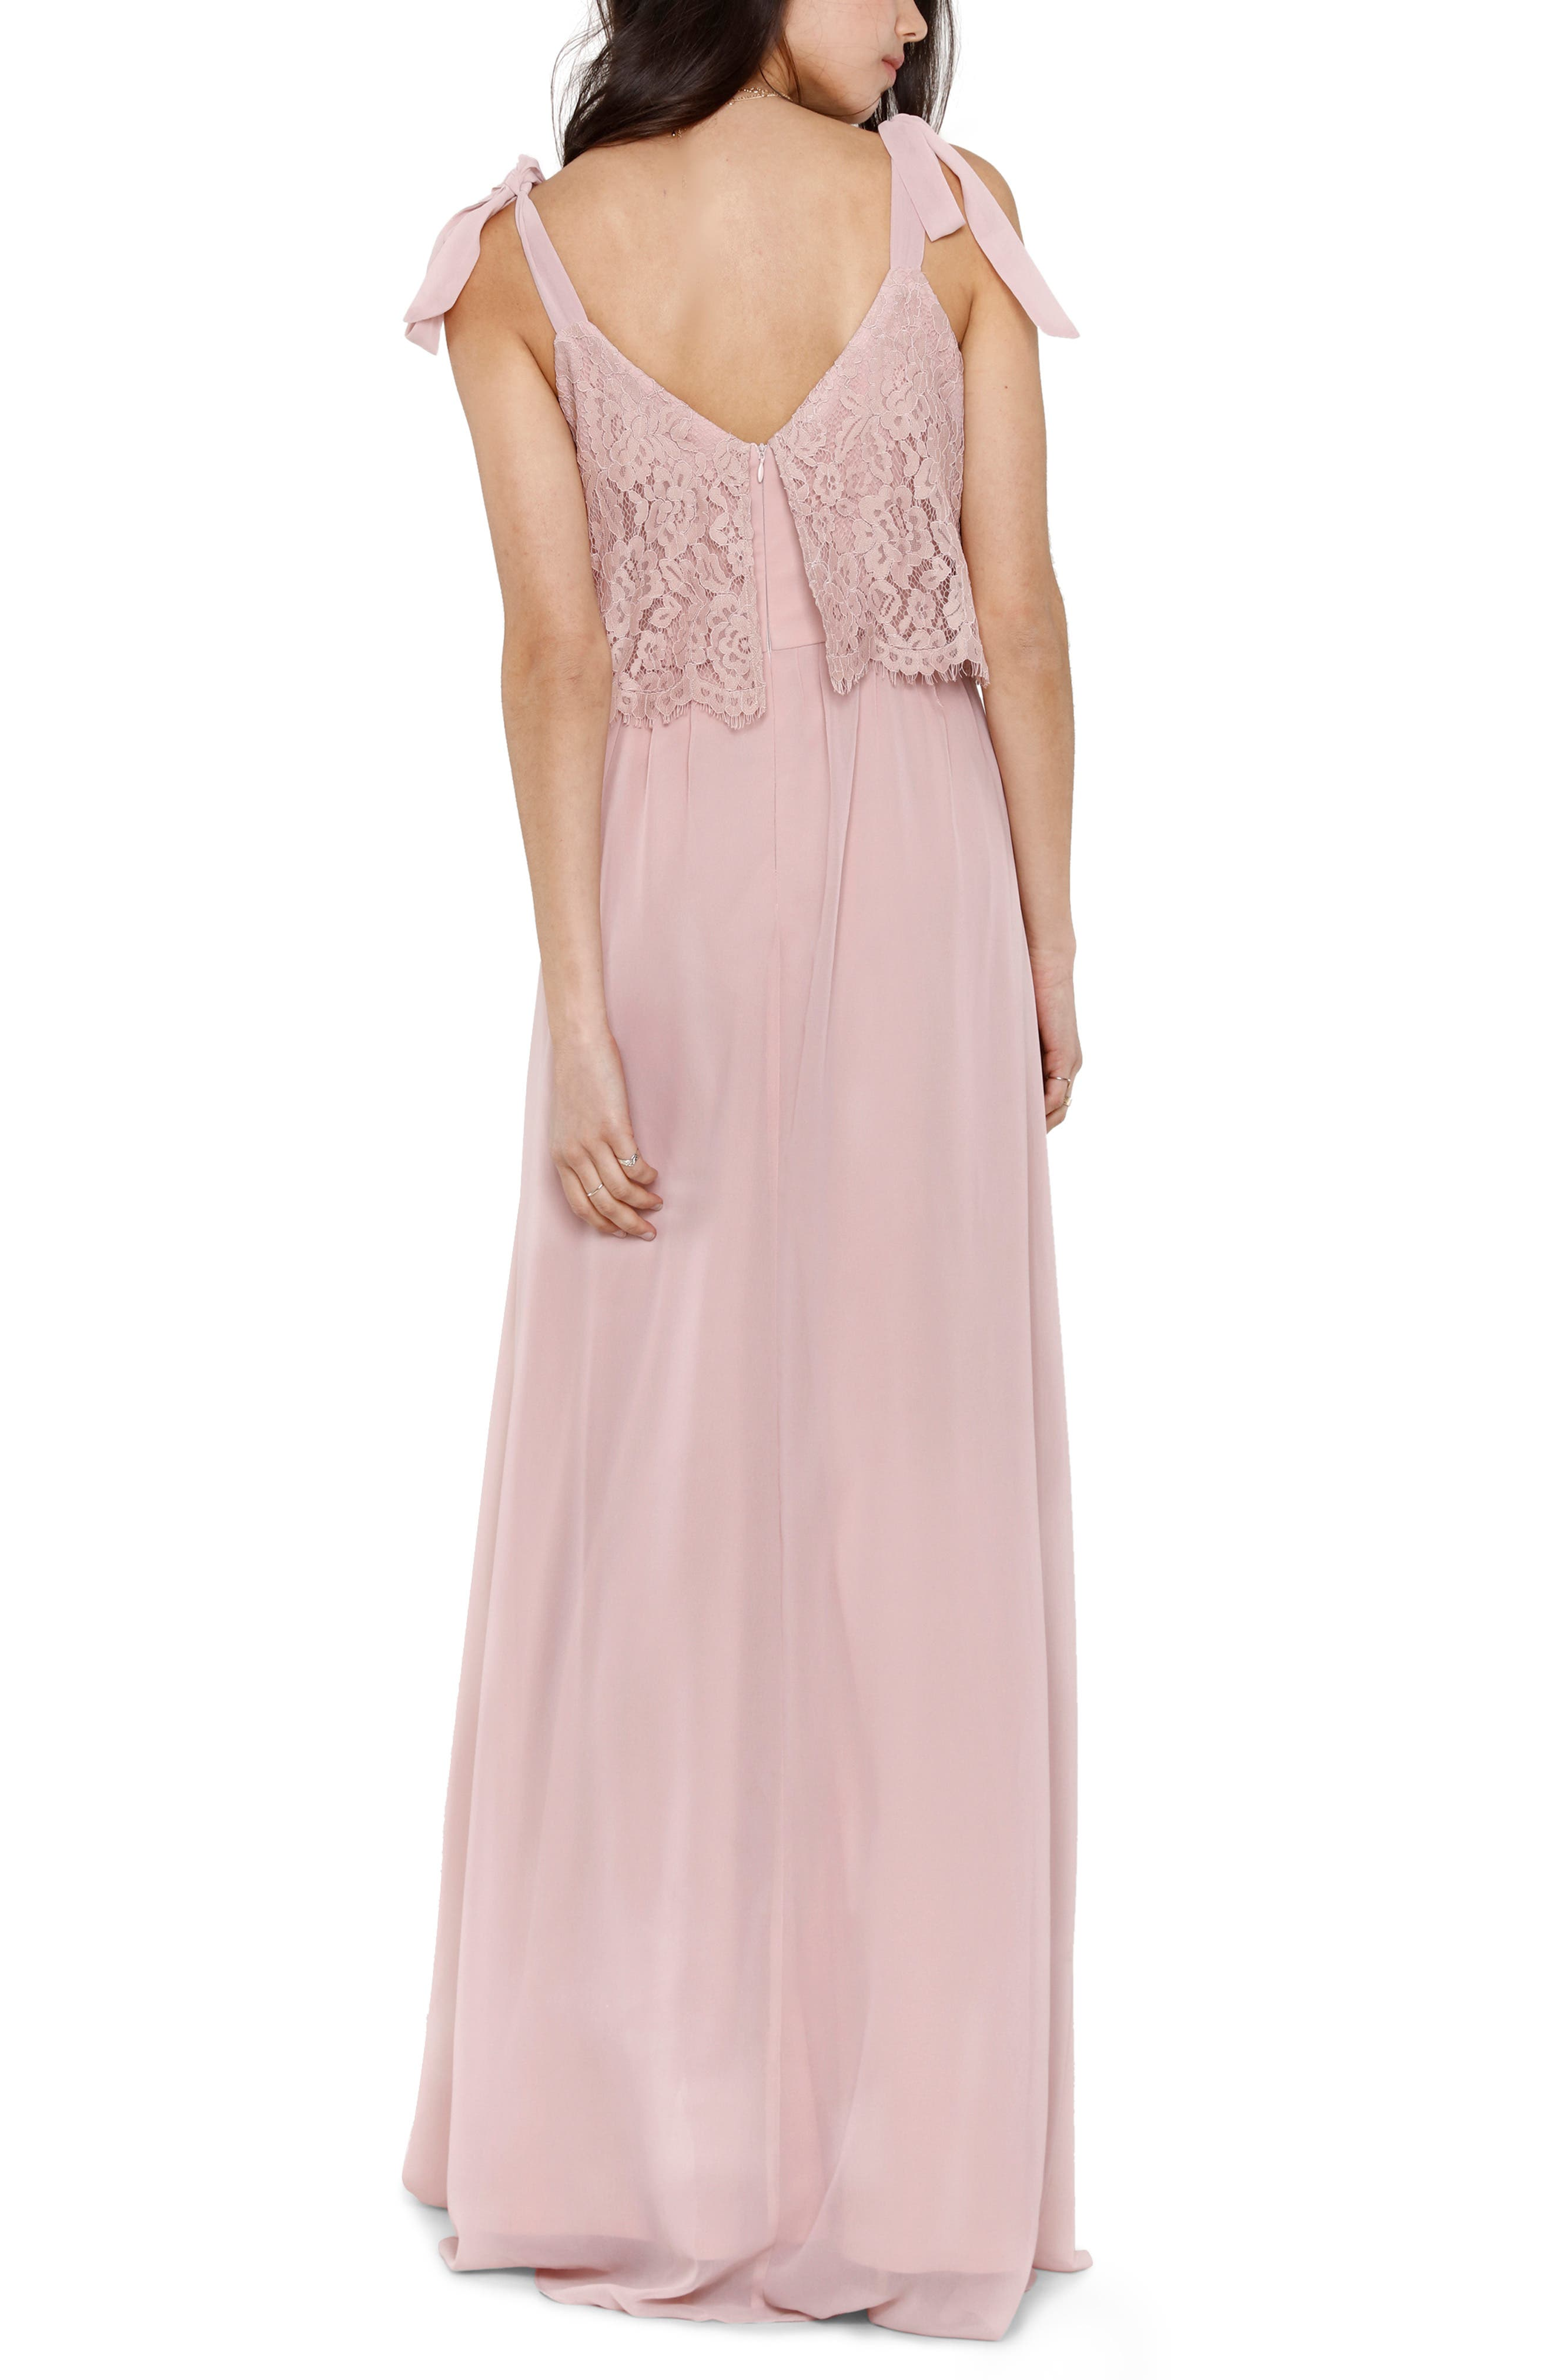 Koko Tie Shoulder Lace Bodice Gown,                             Alternate thumbnail 2, color,                             MAUVE